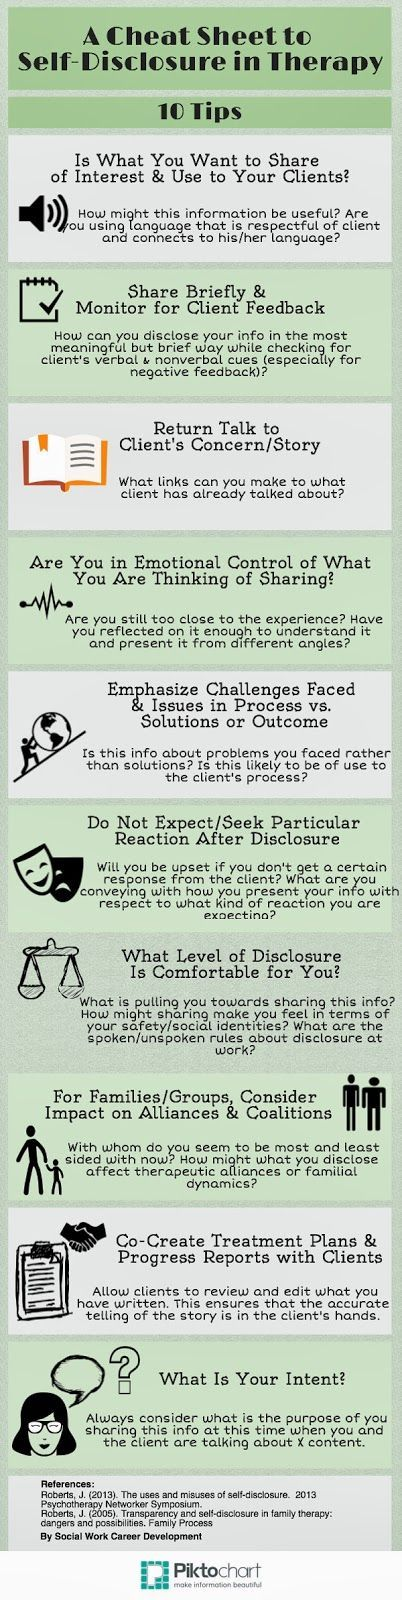 "The Art of Self-Disclosure in Therapy by Social Work Career Development < some of the key take-aways from Janine Roberts, Ed.D.'s talk about ""Therapist Self-Disclosure""..."